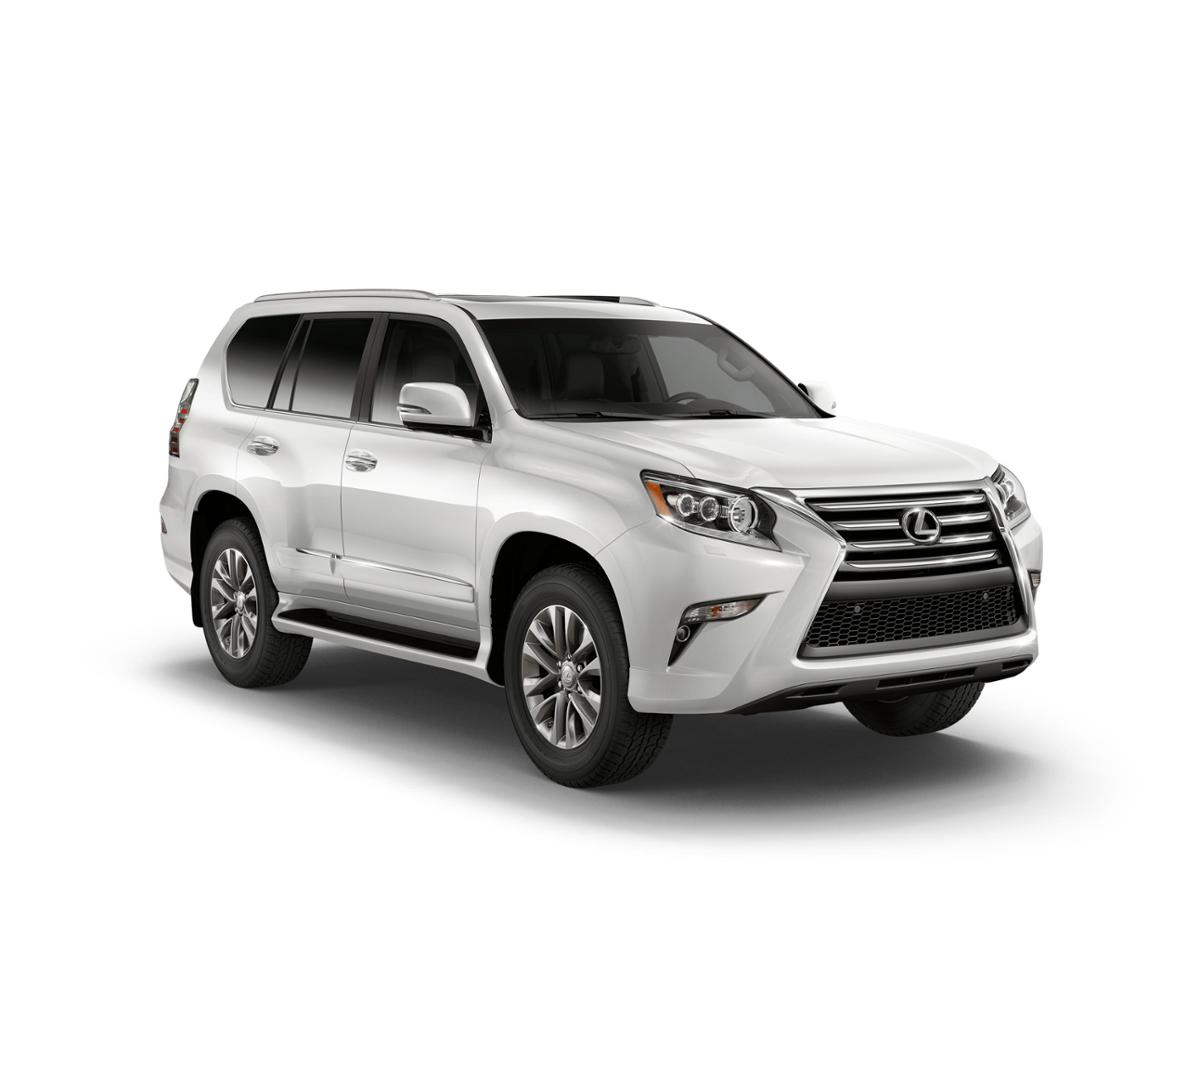 2018 Lexus GX 460 Vehicle Photo in Dallas, TX 75209